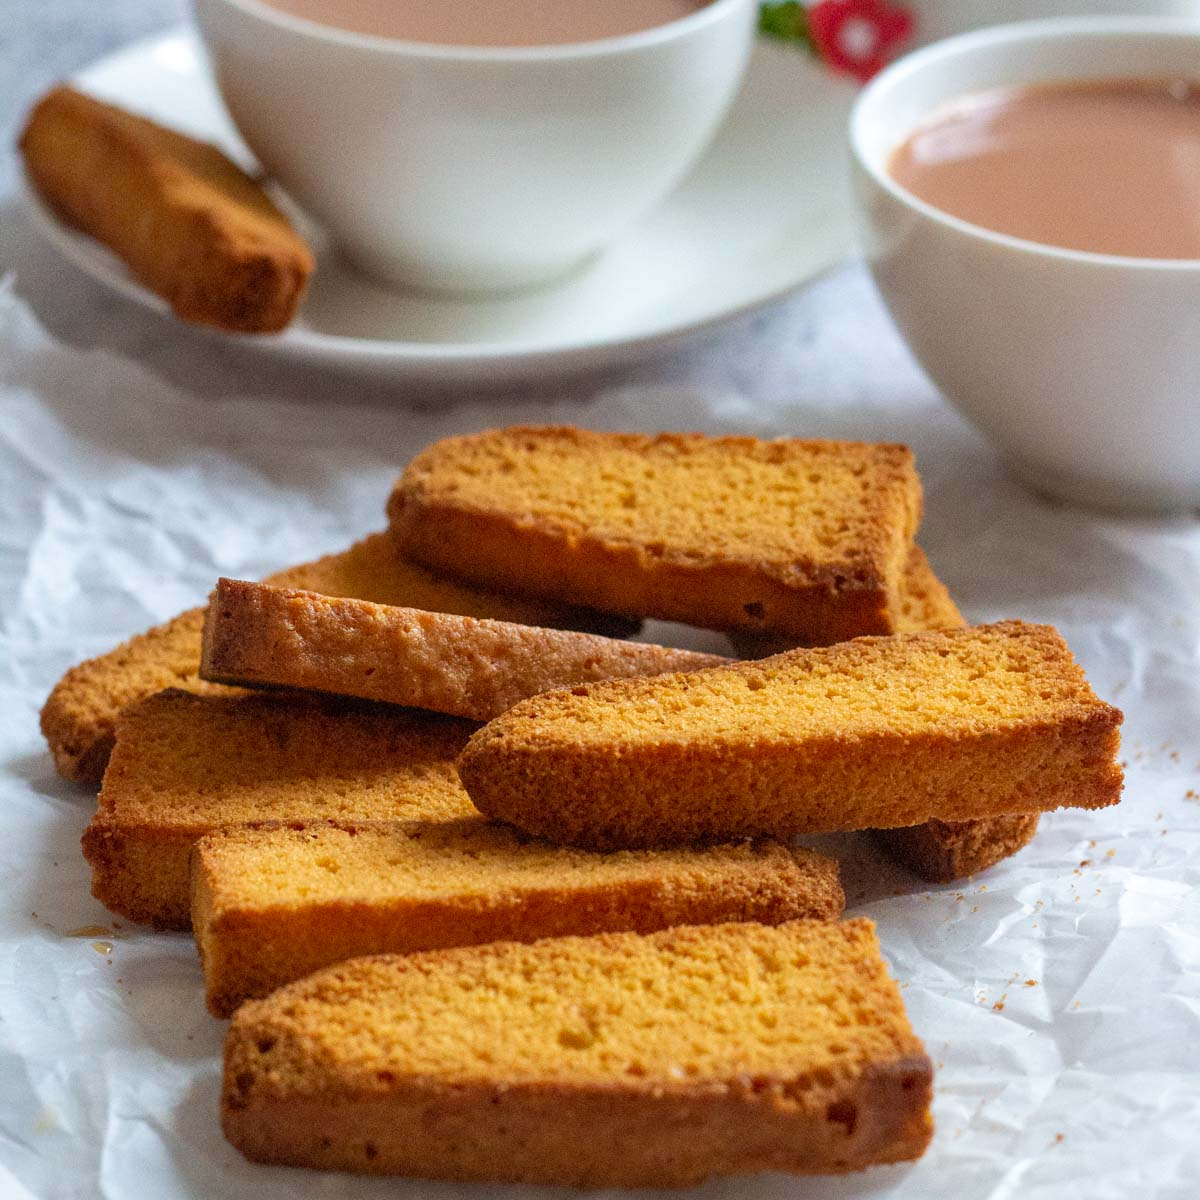 A pile of cake rusk on parchment paper. At the back are two cups of tea, and one of the cups of tea has a cake rusk placed on the saucer.